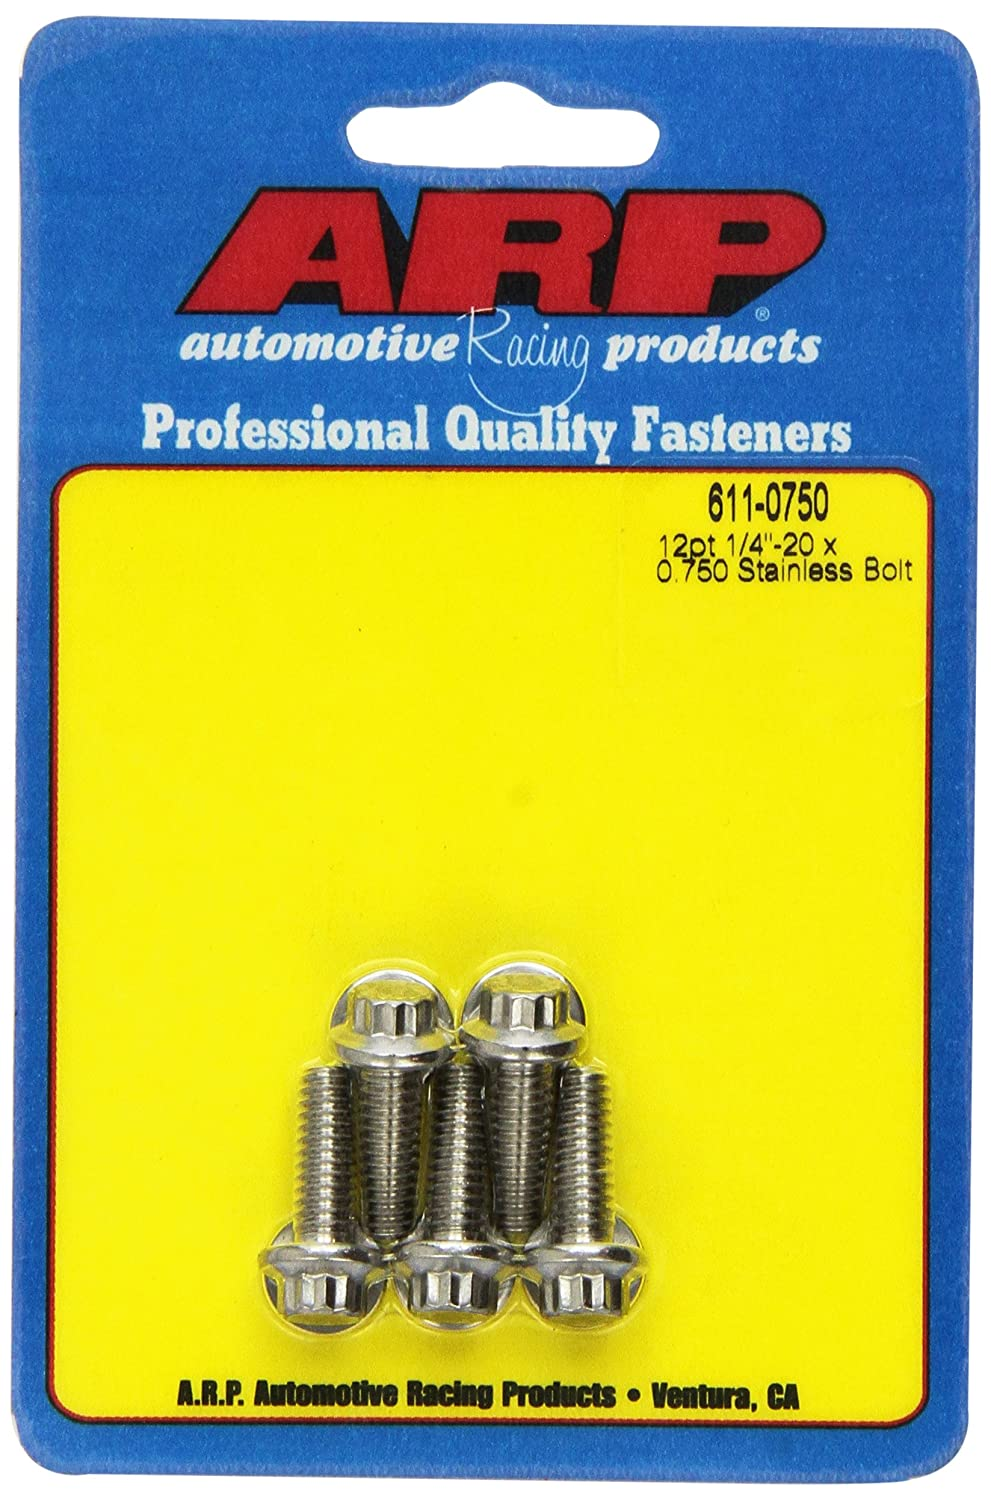 ARP 6110750 5-Pack Of Stainless Steel 12-Point Bolts, Size 1/4-20, 0.750 Under Head Length 611-0750